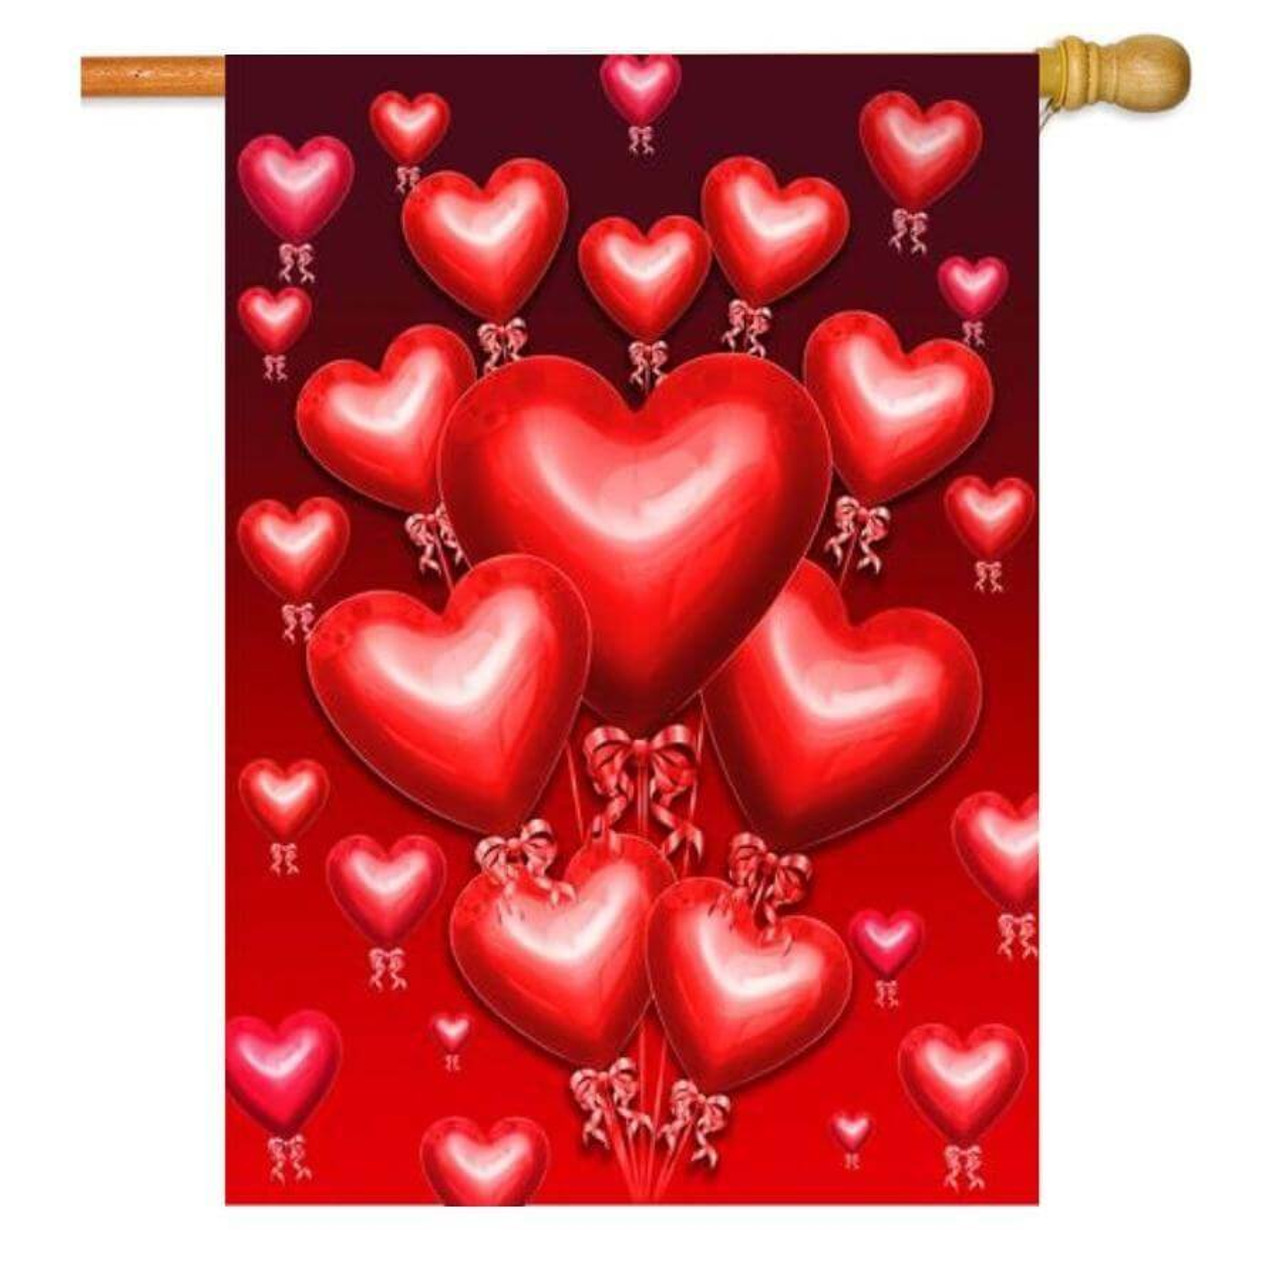 House flag with red heart balloons on a red background that fades into a darker red on the top.